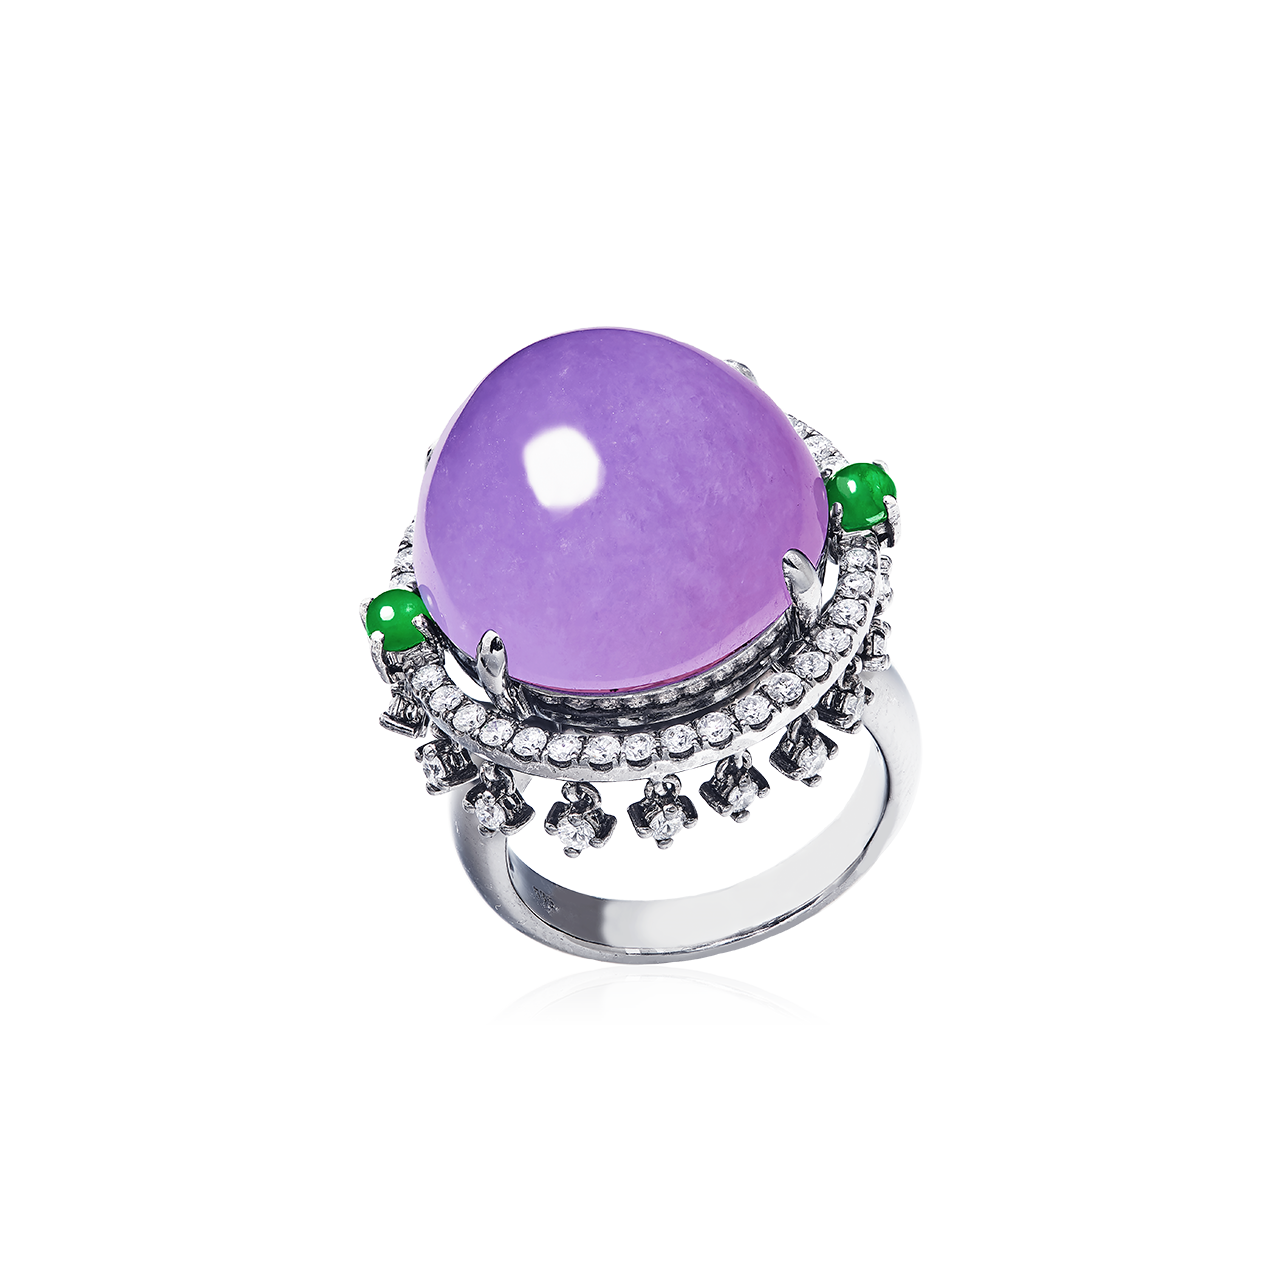 GSA 天然A貨紫羅蘭翡翠鑽石戒 19.07公克